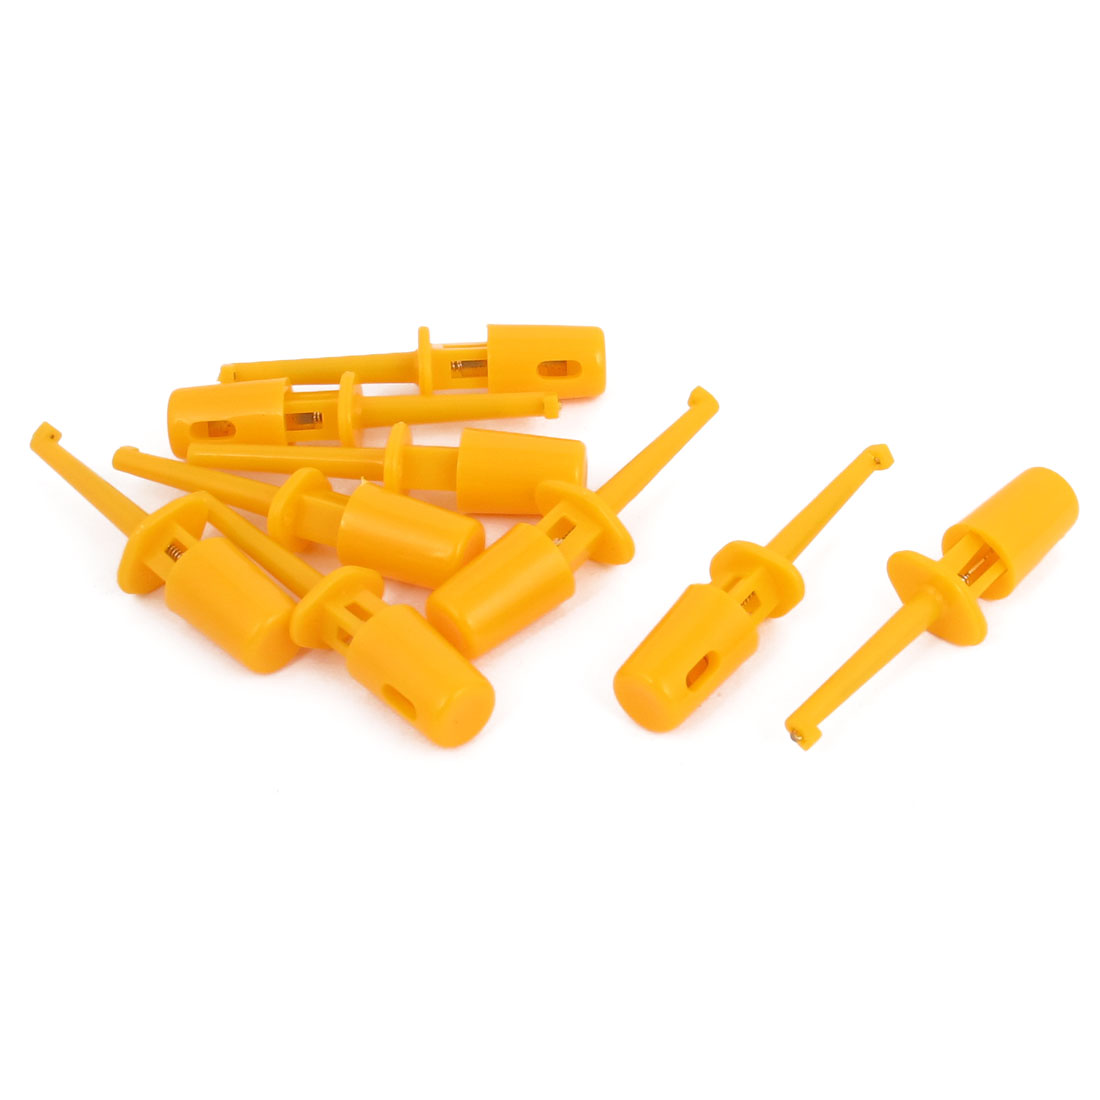 9pcs Plastic Coated Electrical Testing Lead Wire Hook Clip Connector Orange